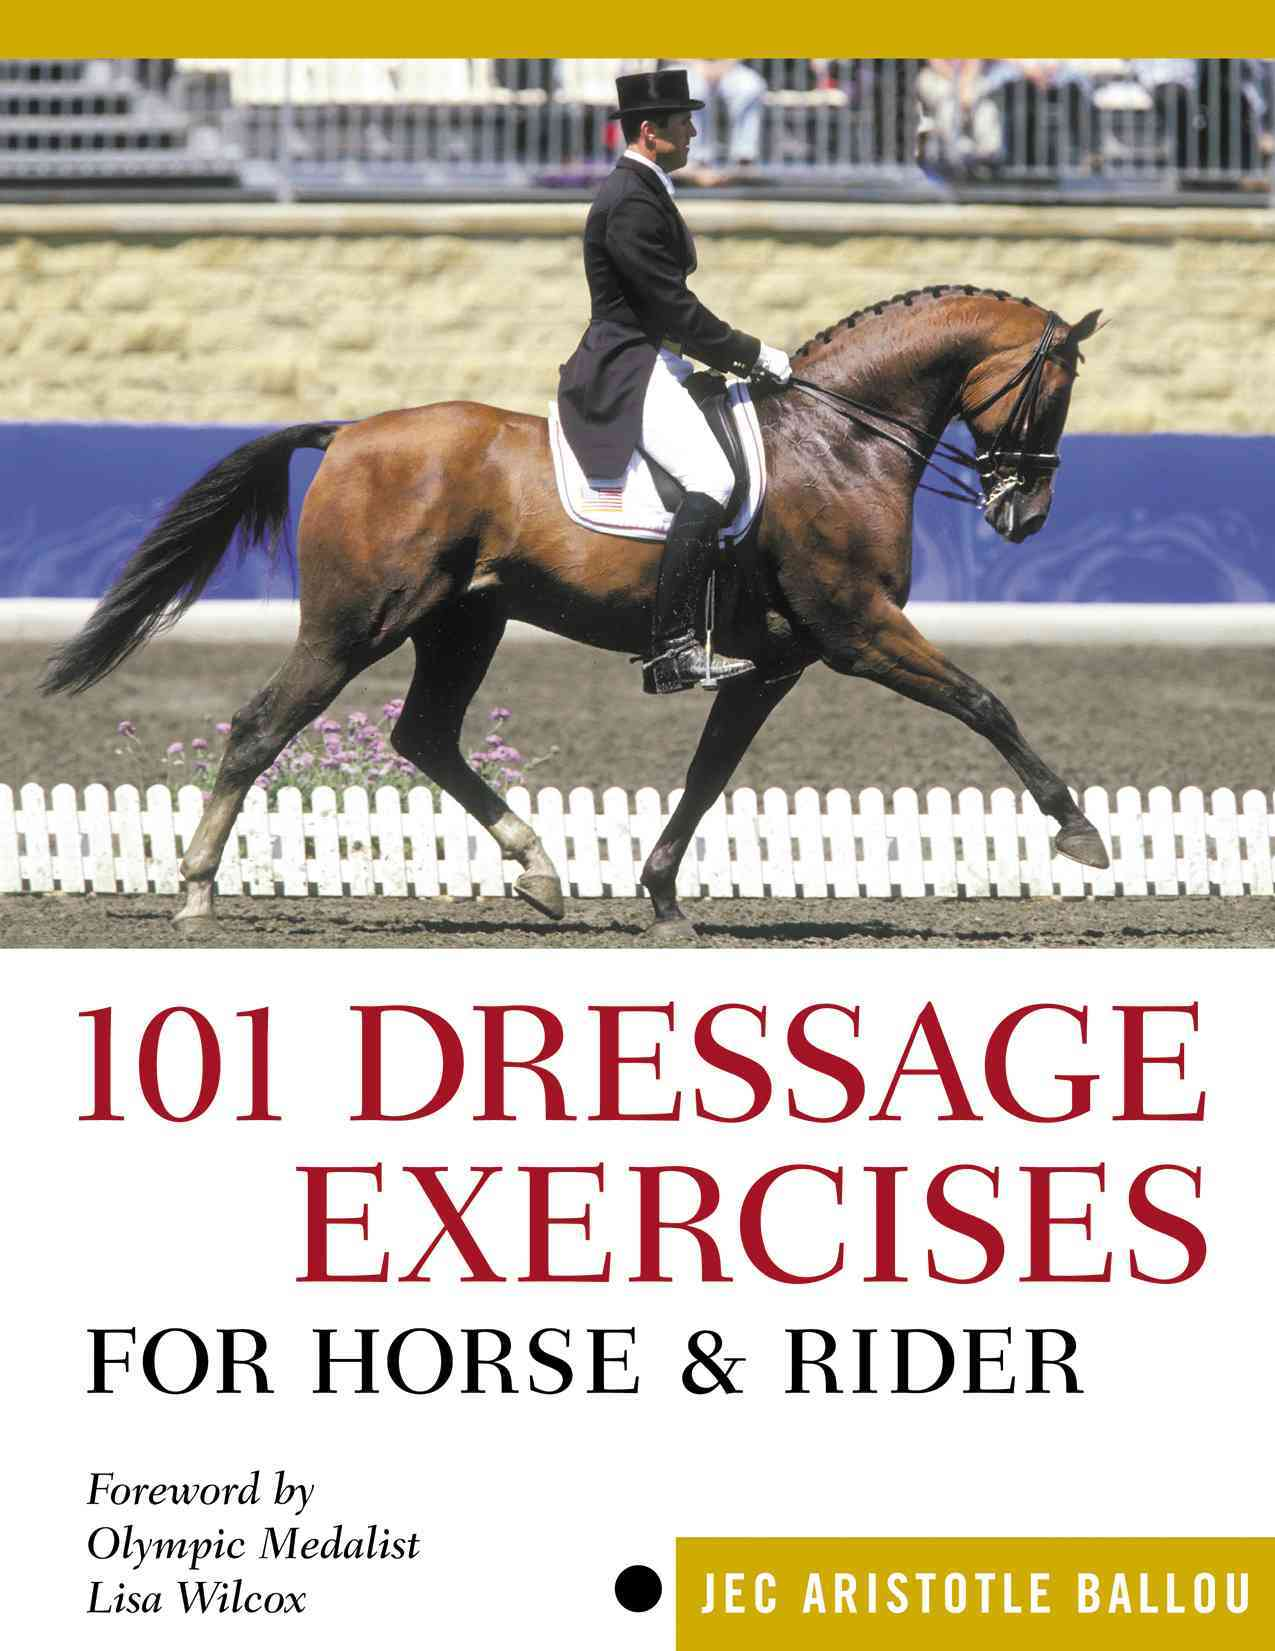 101 Dressage Exercises For Horse & Rider (Paperback)